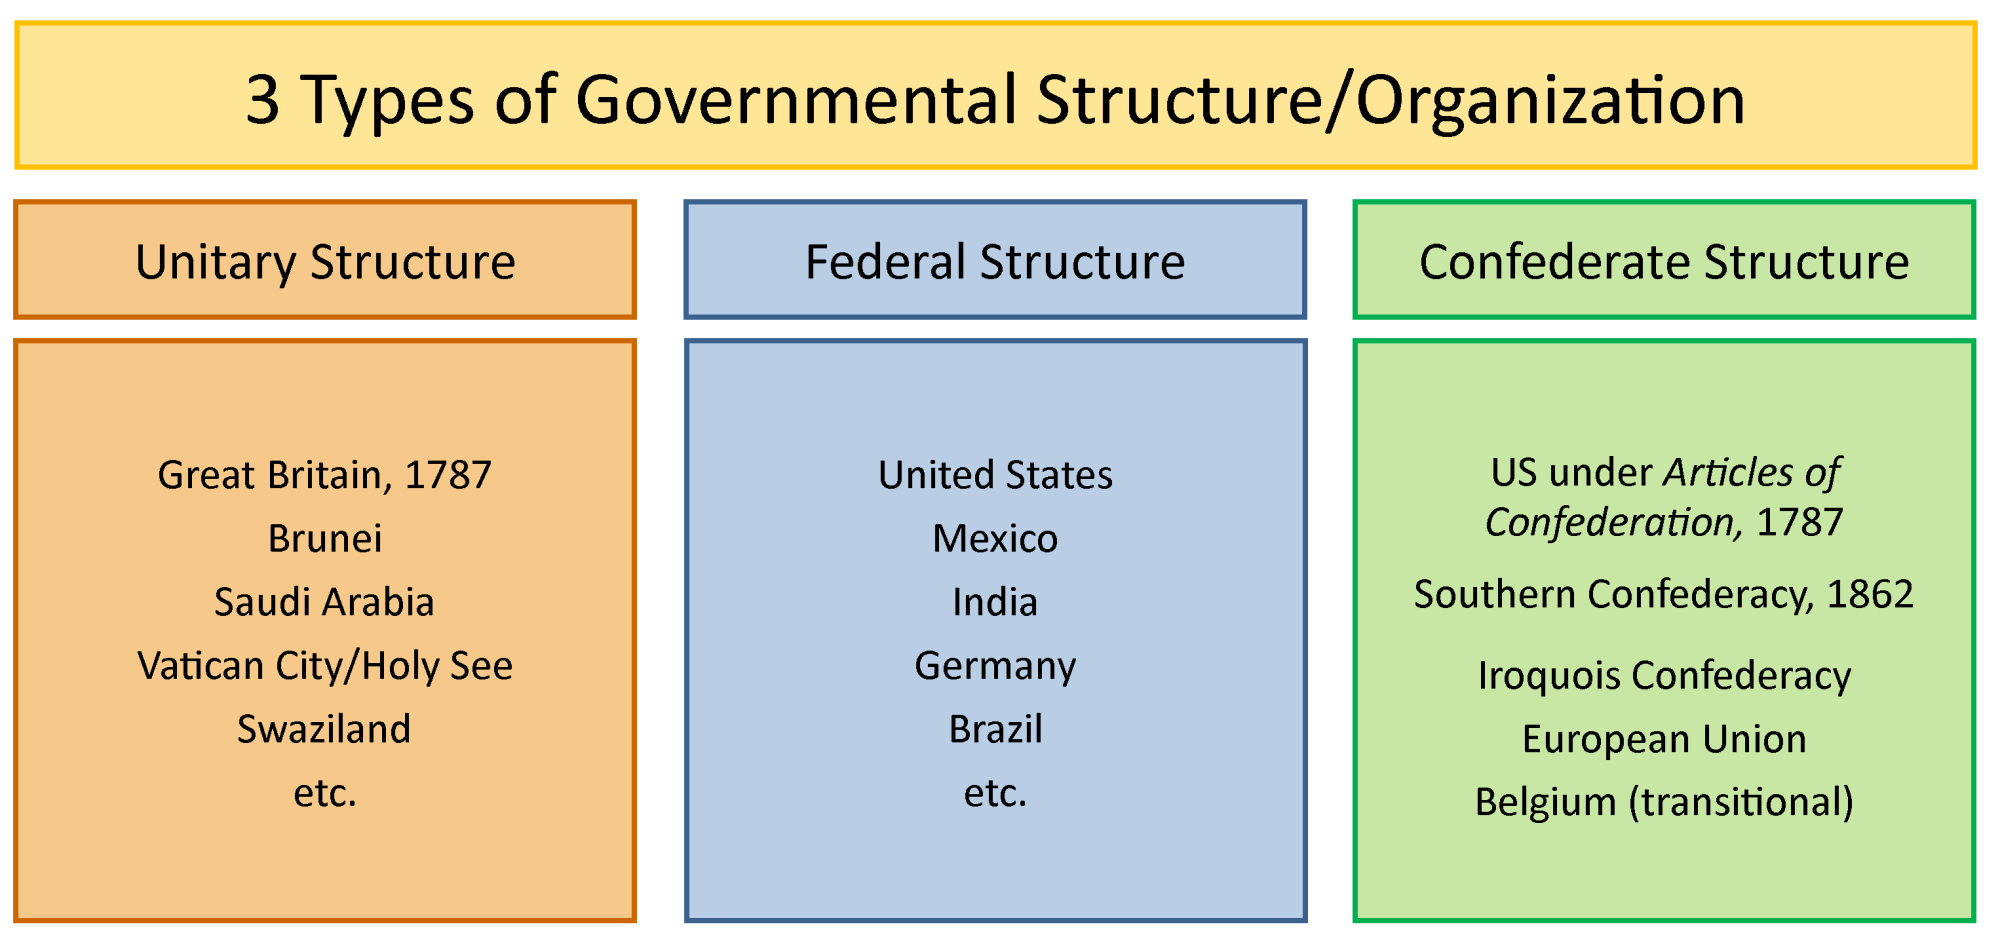 hight resolution of chart illustrating the three structures of government by showing various countries that use those structures